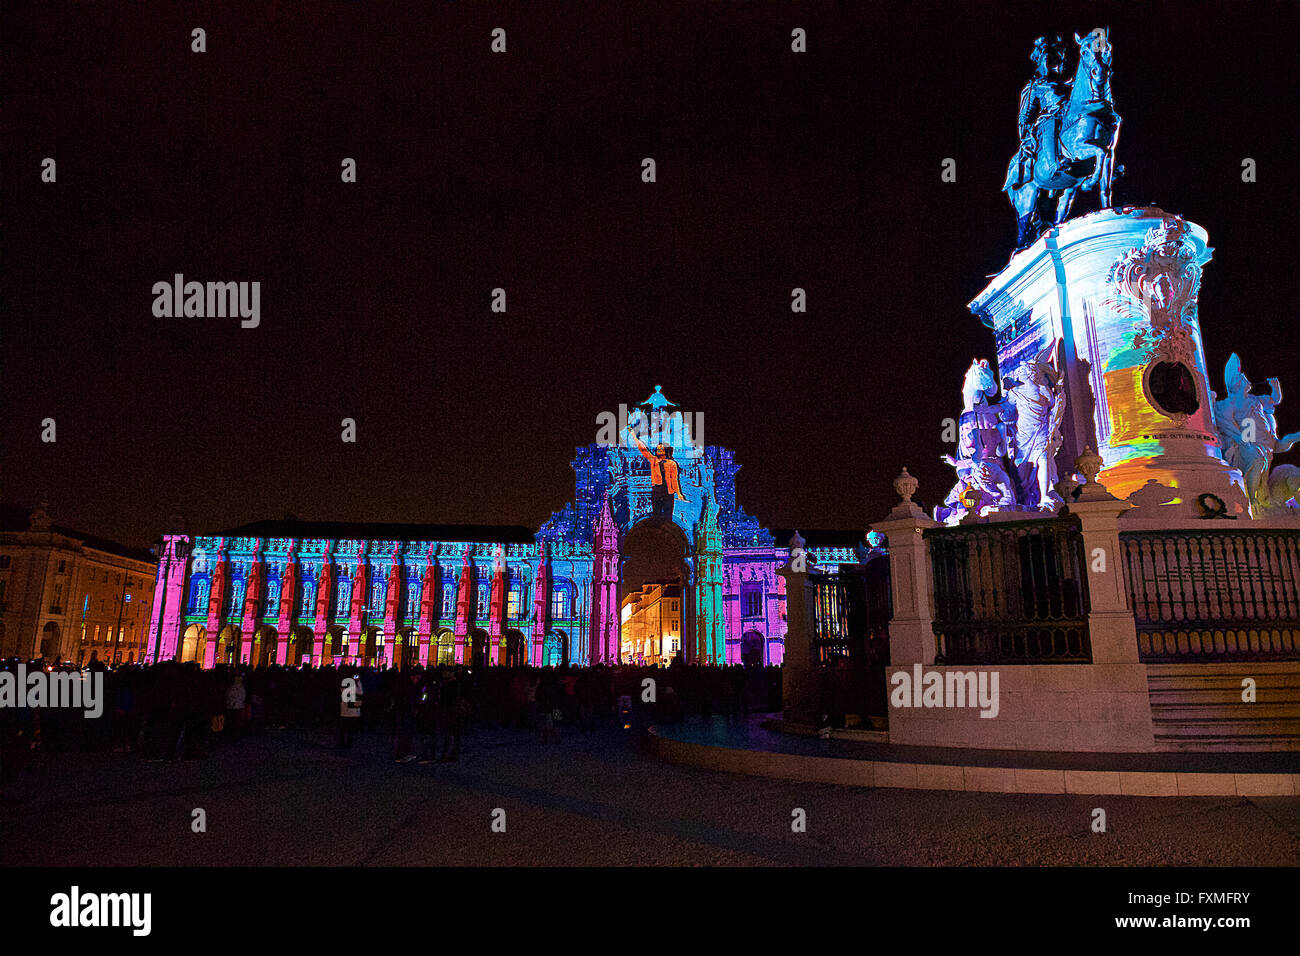 Comercio Square Projection Mapping, Lisbon, Portugal - Stock Image